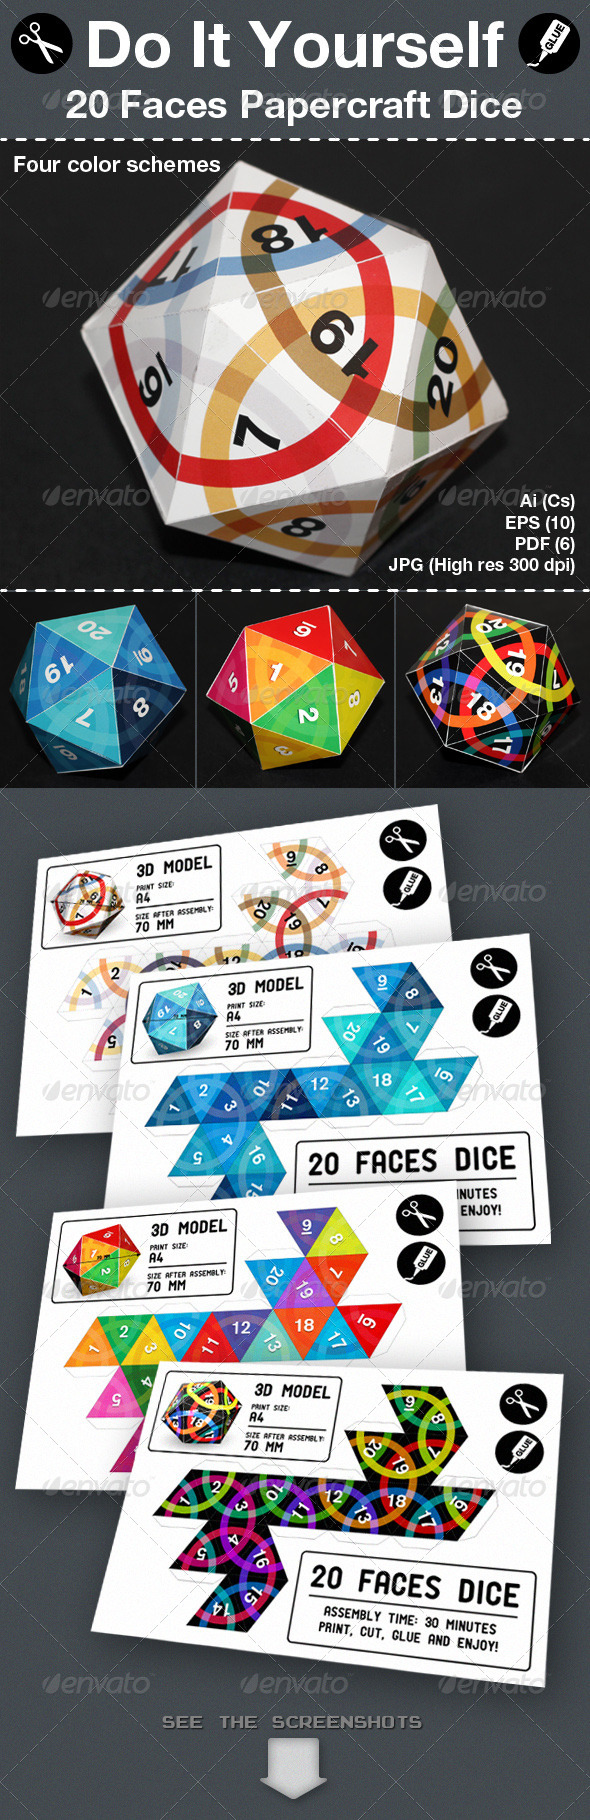 Twenty Faces Papercraft Dice